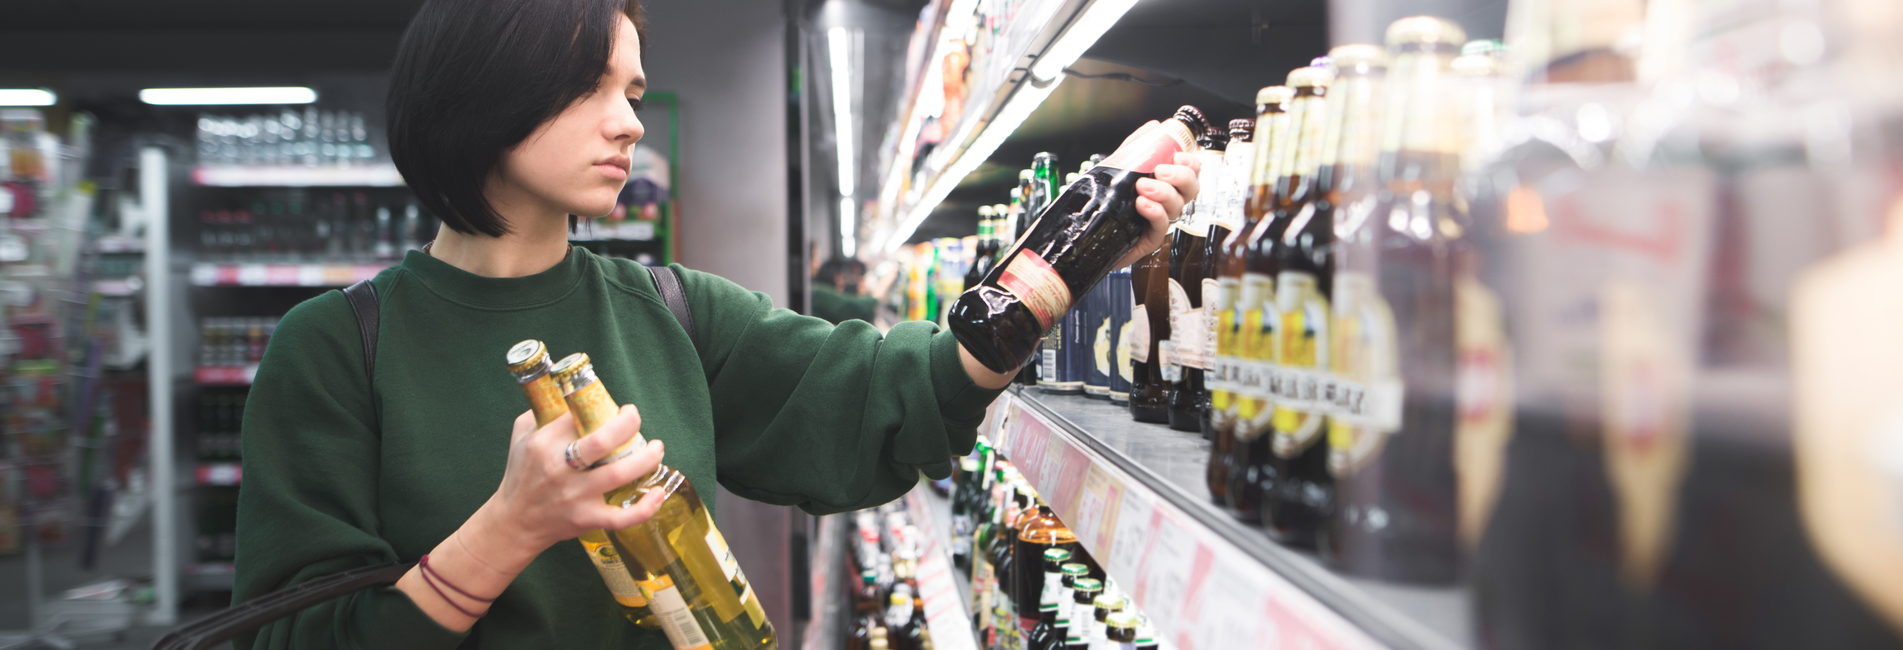 Alcohol Rehab Centers in Costa Mesa CA - Get Help Today - Resurgence - A woman is in a store trying to avoid purchasing alcohol, but she cannot help it and needs to attend one of the leading alcohol rehab centers in Costa Mesa CA.